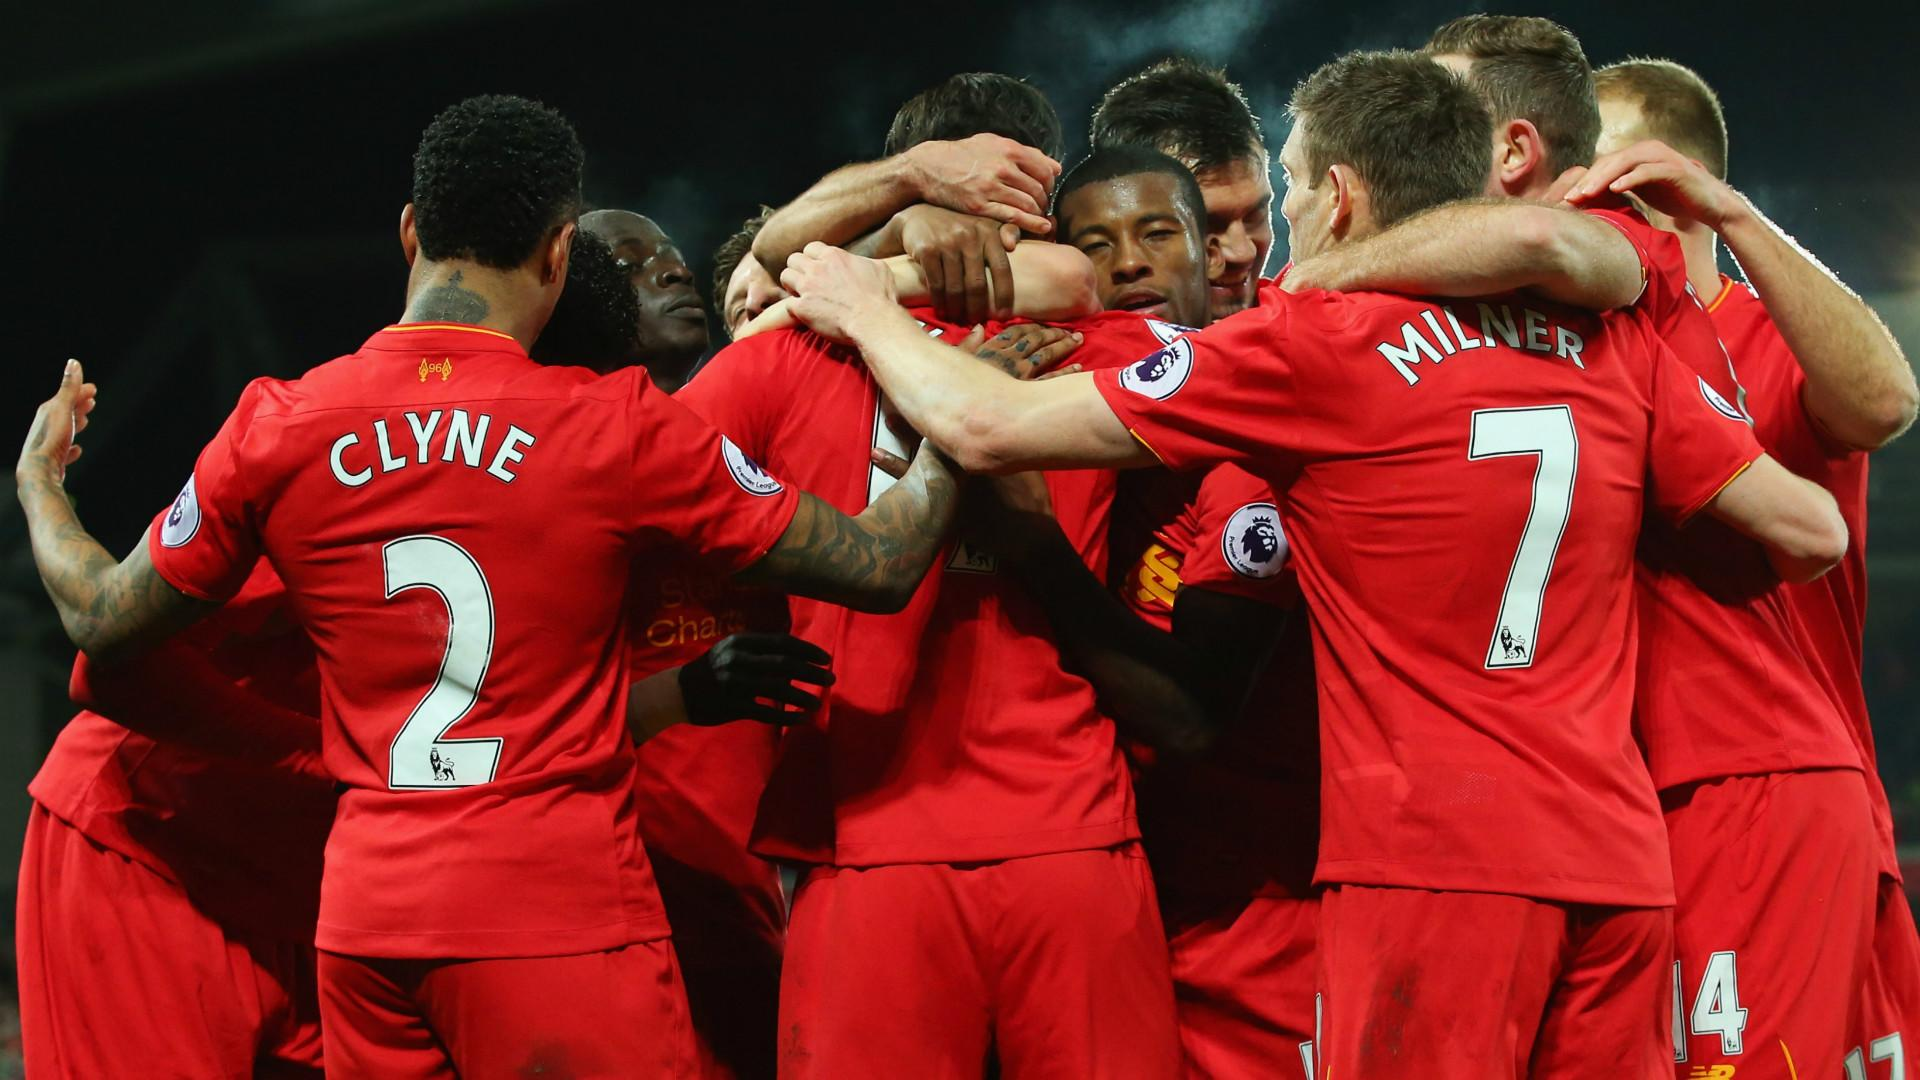 Sigurdsson strike stuns liverpool at anfield yahoo sports - Liverpool Show They Re In The Mood To Maul Against Stoke